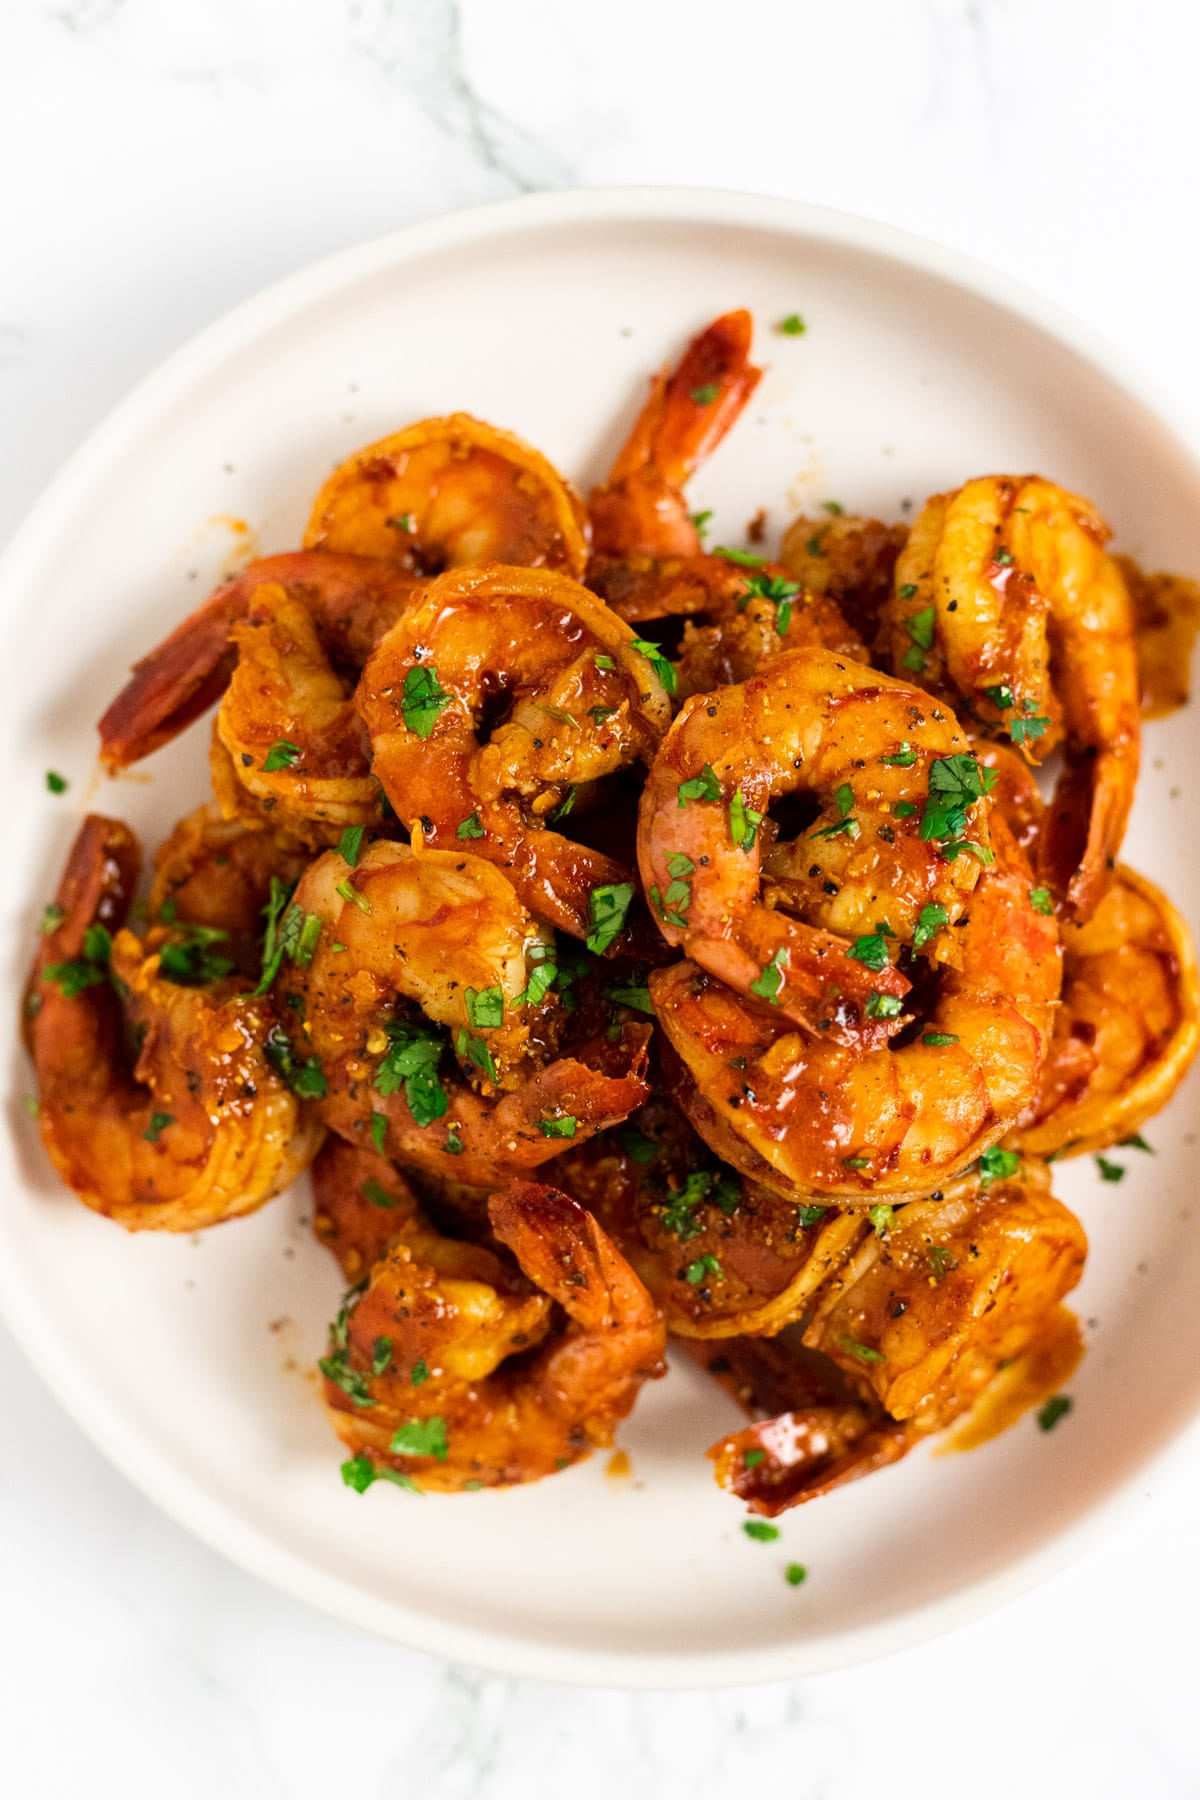 A top down view of a bowl of chili lime shrimp